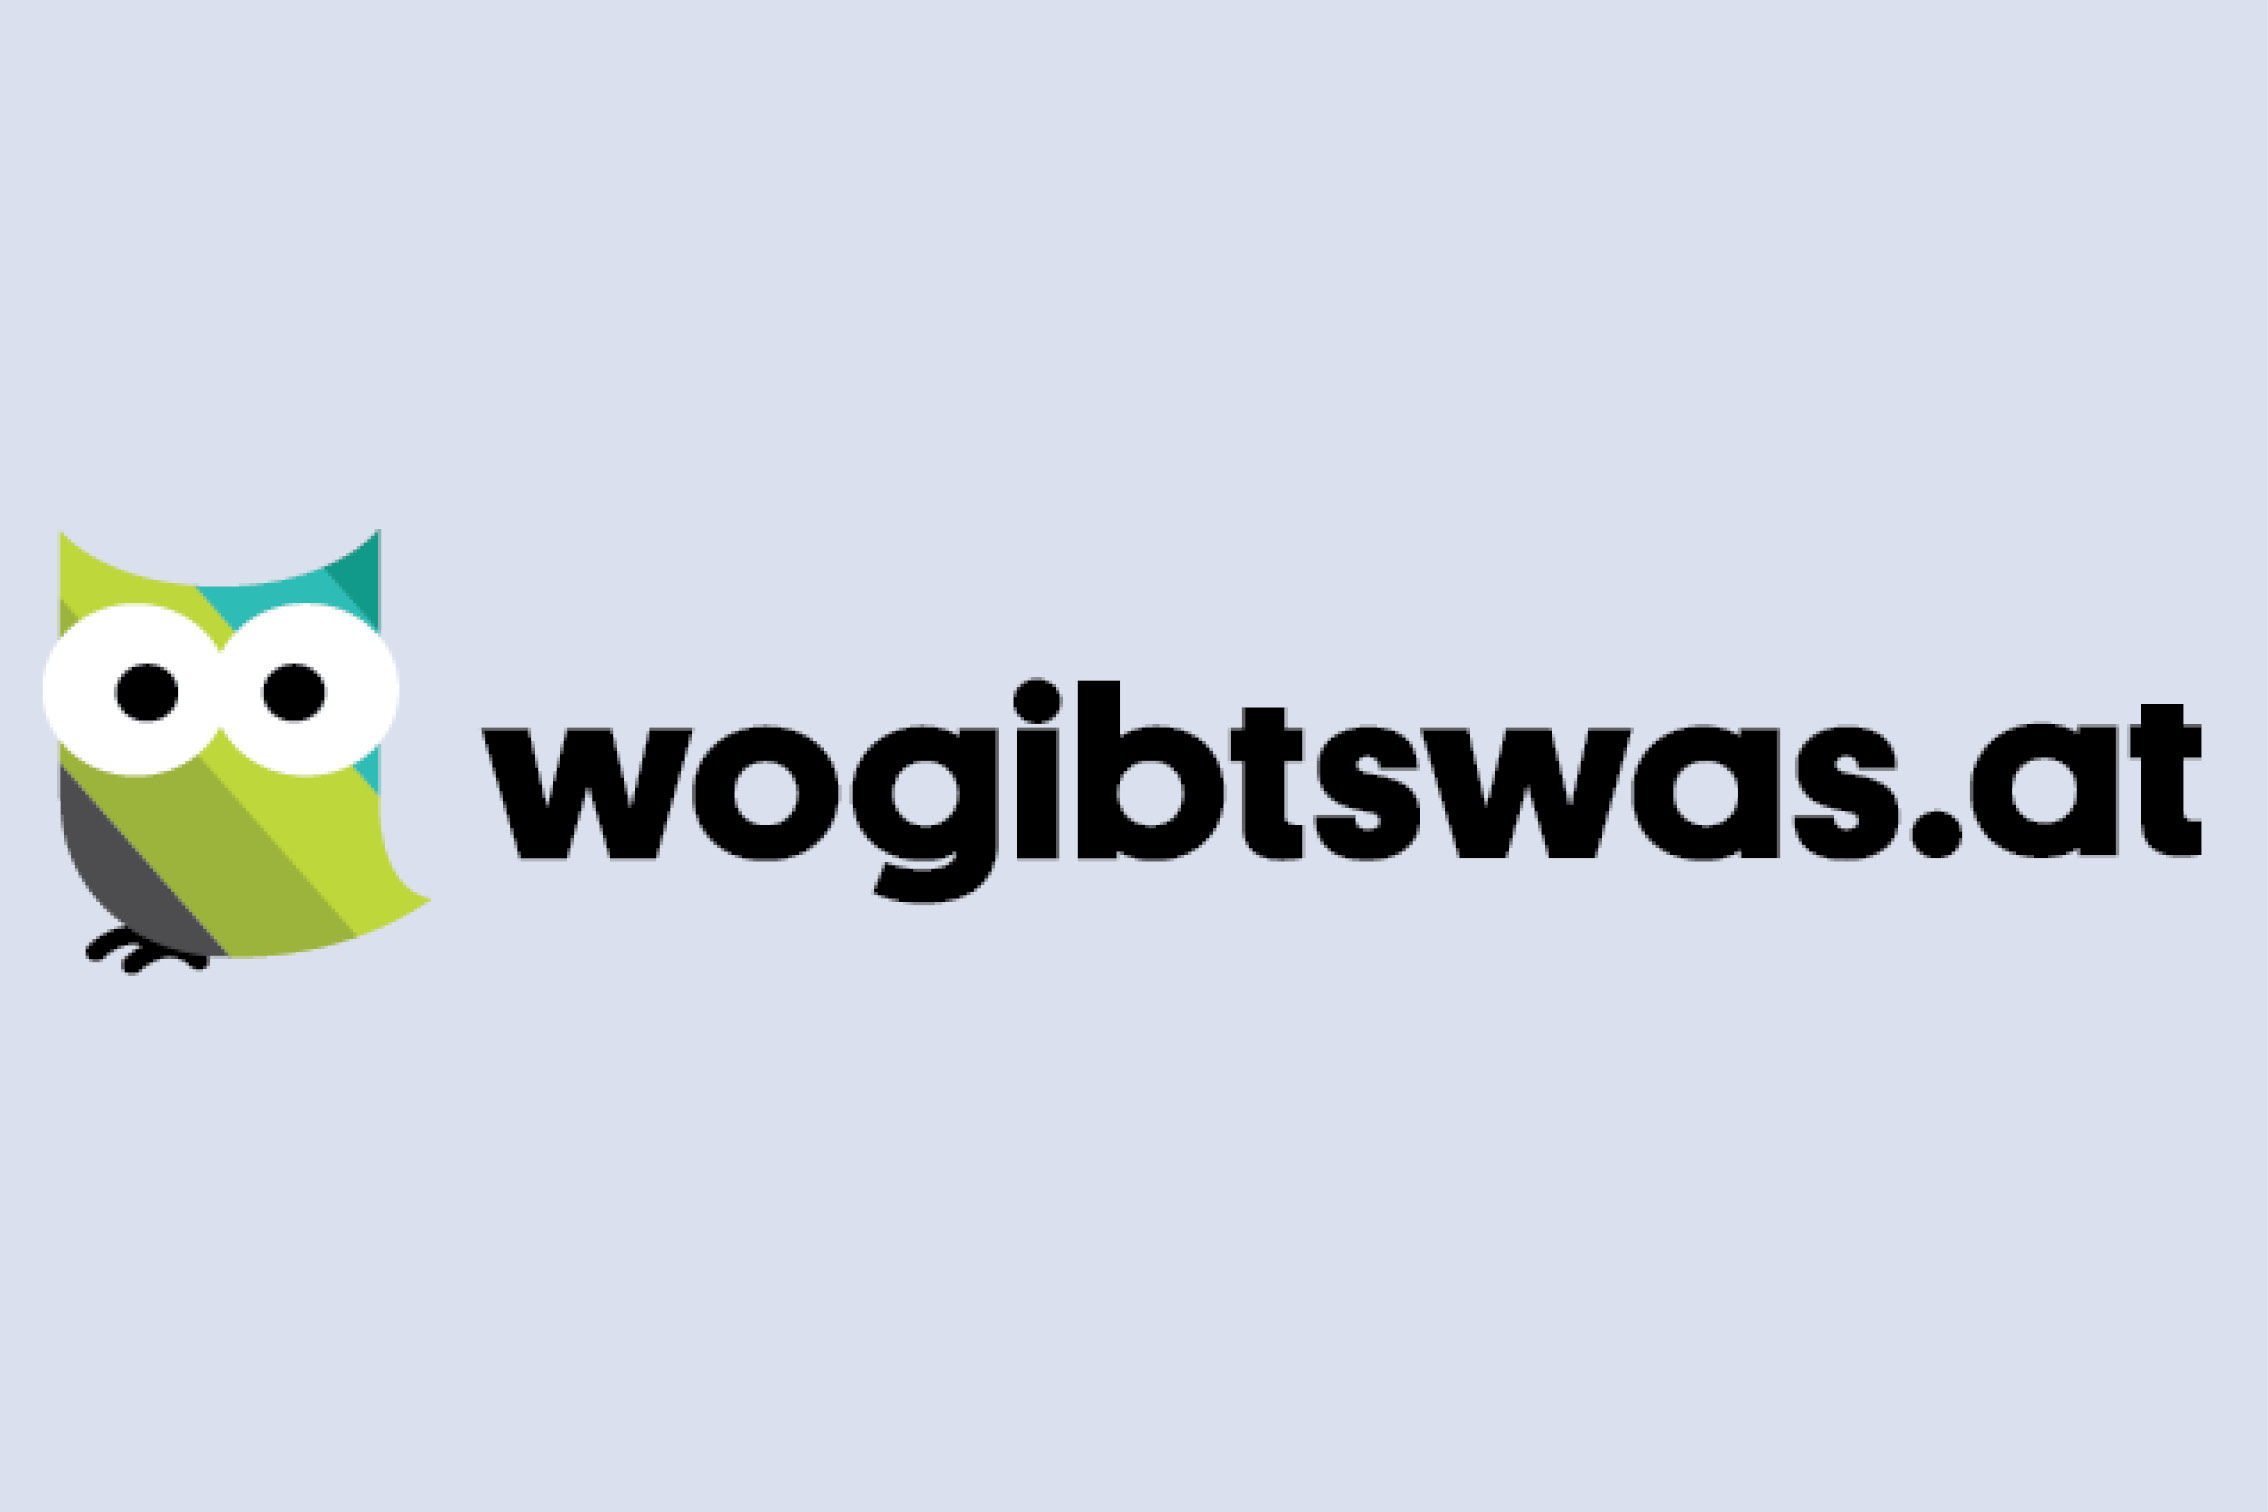 wogibtswas.at